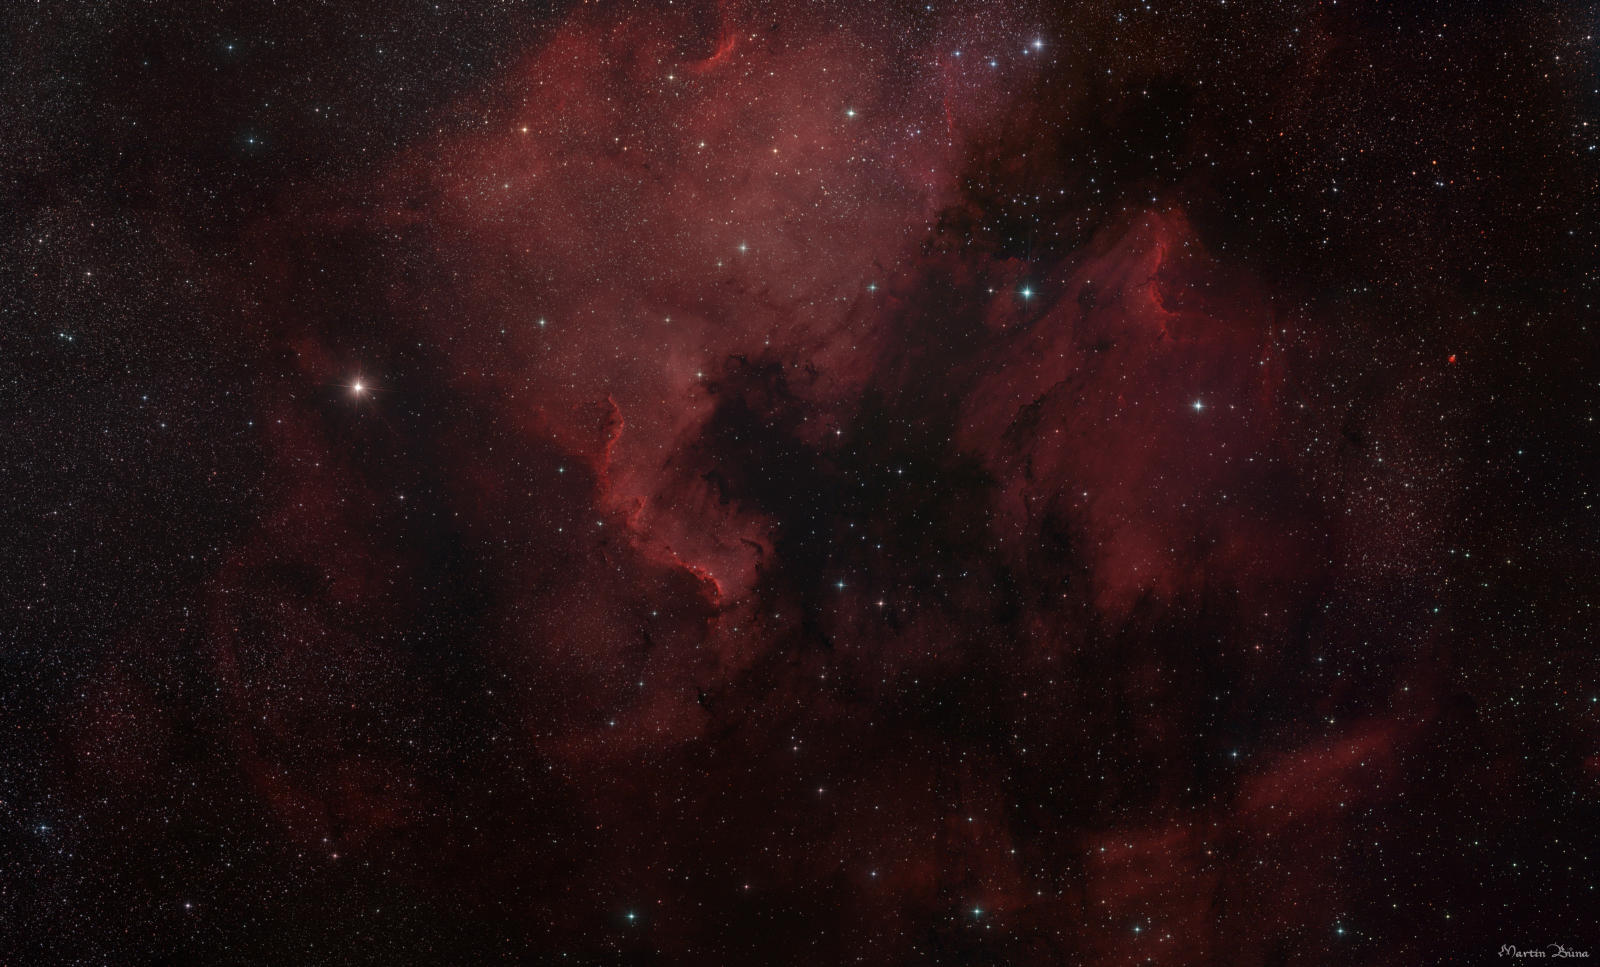 The North America and Pelican Nebula Mosaic